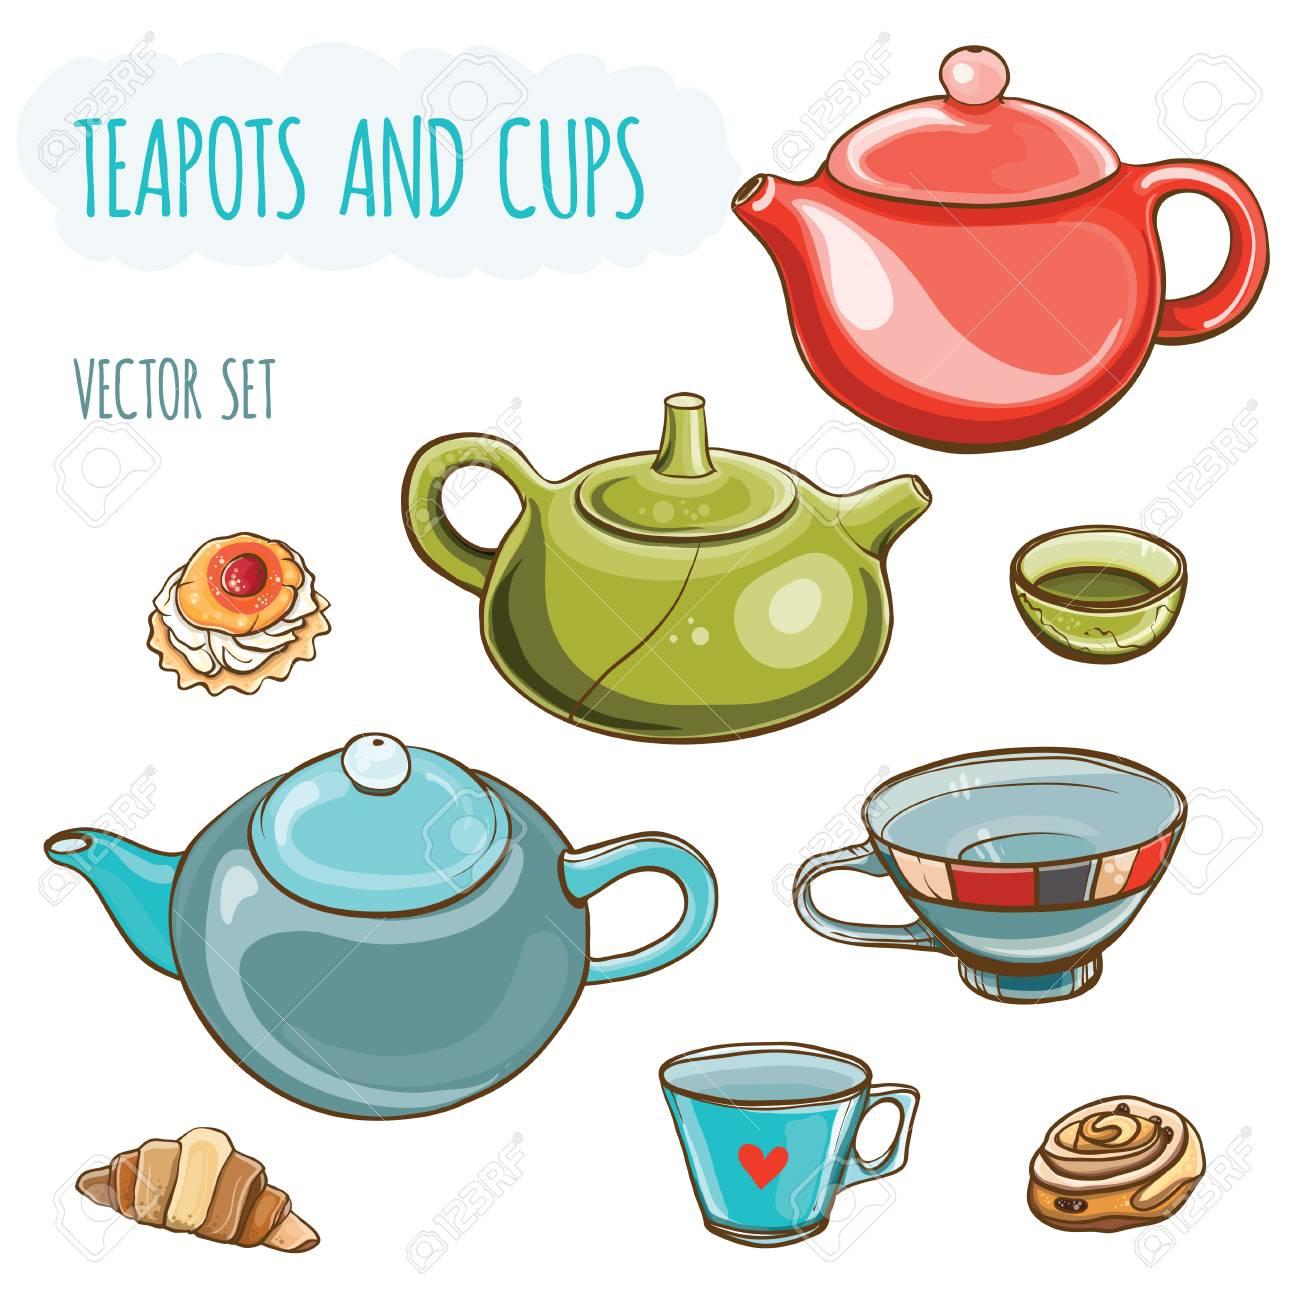 Tea set. Vector illustration set of teapots and cups.Tea time. Isolated. - 44897898